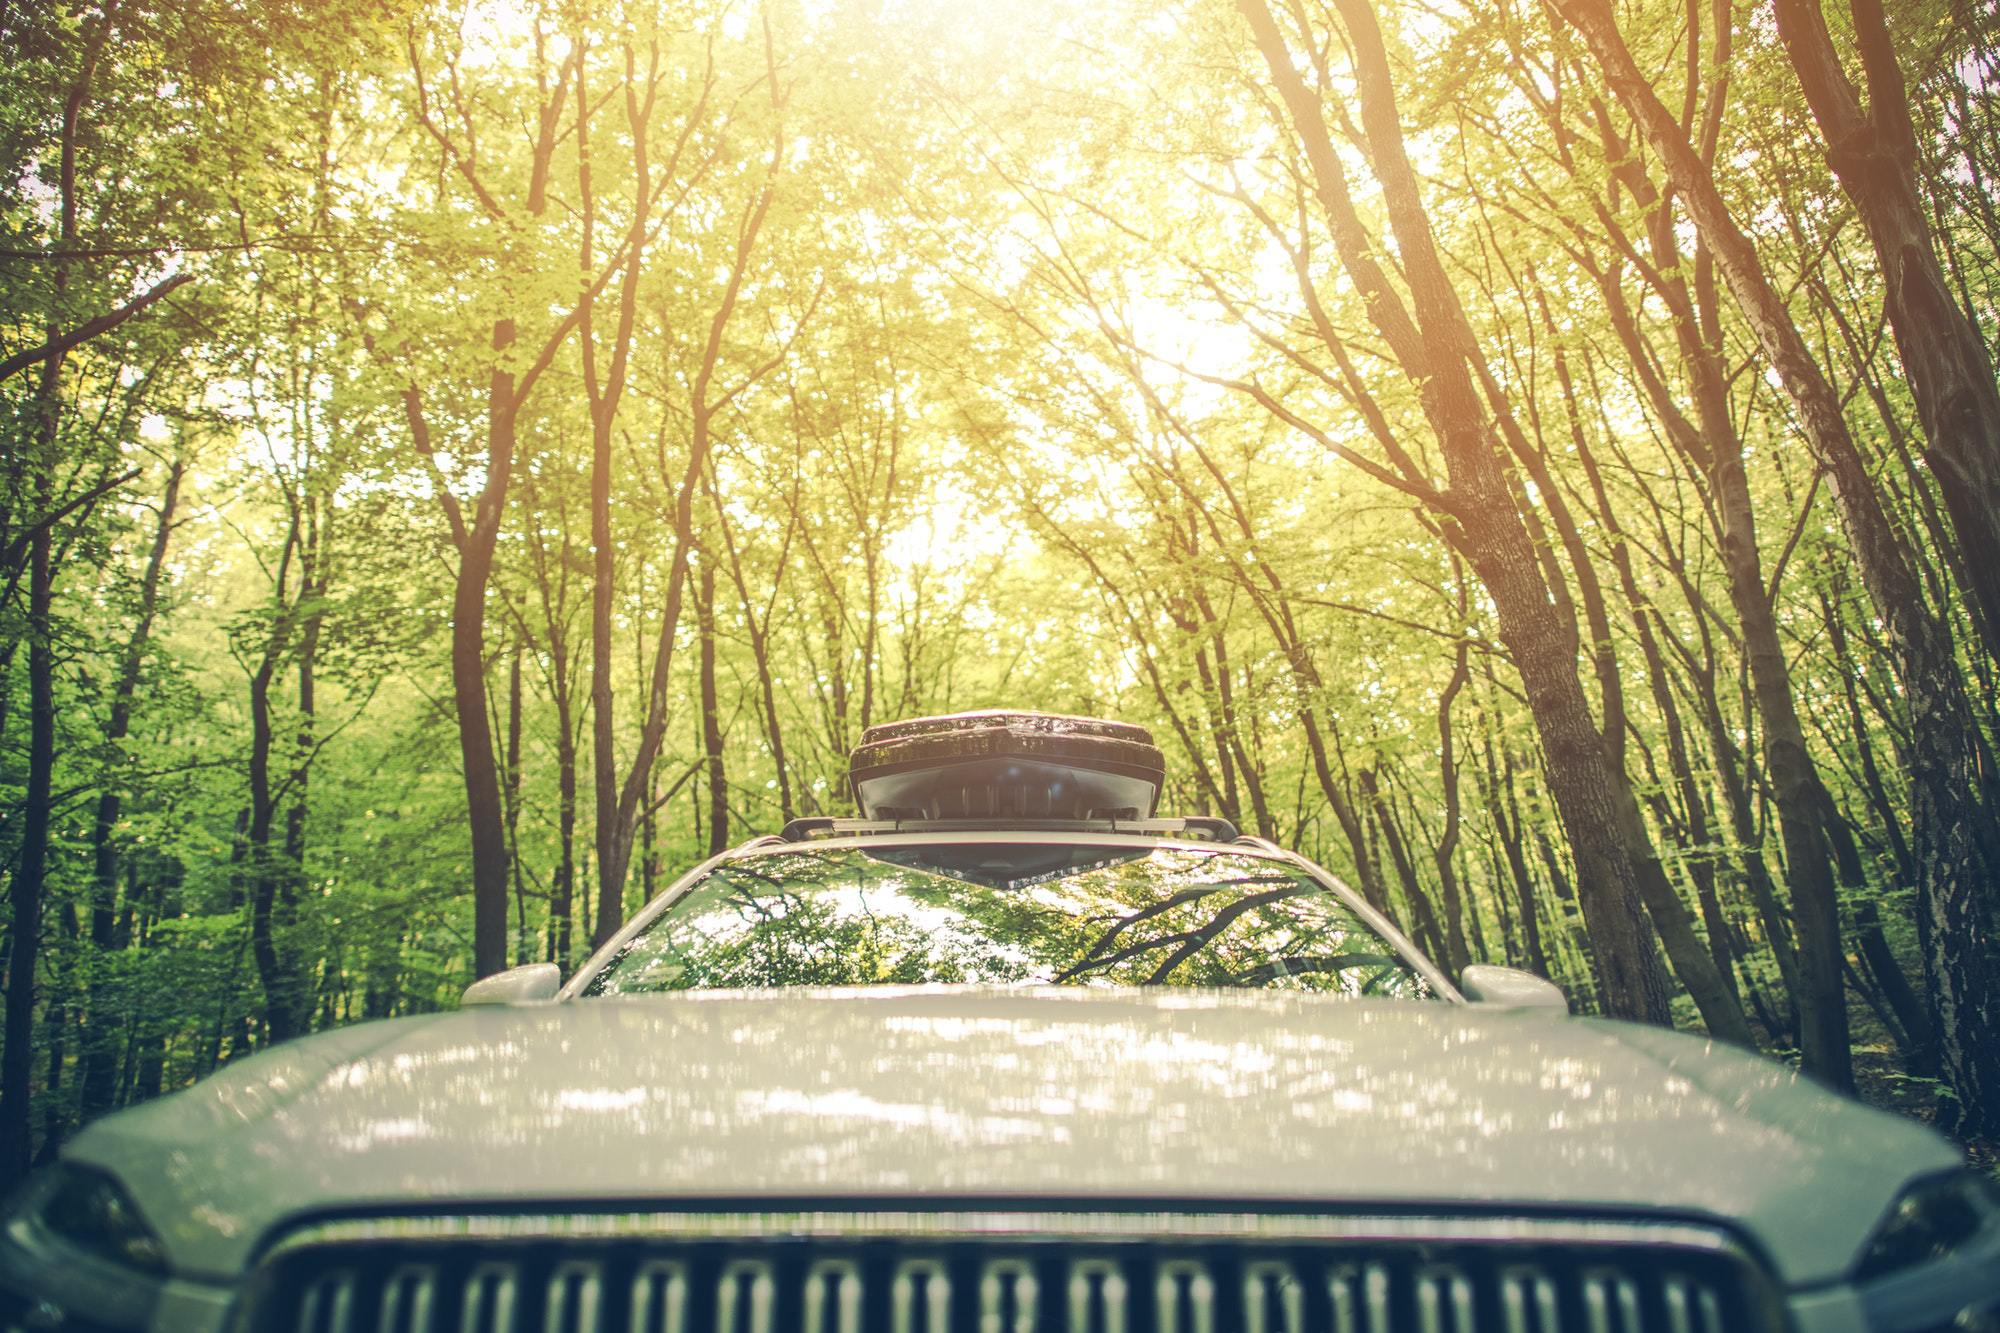 Get Your Car Ready for Road Trip Summer